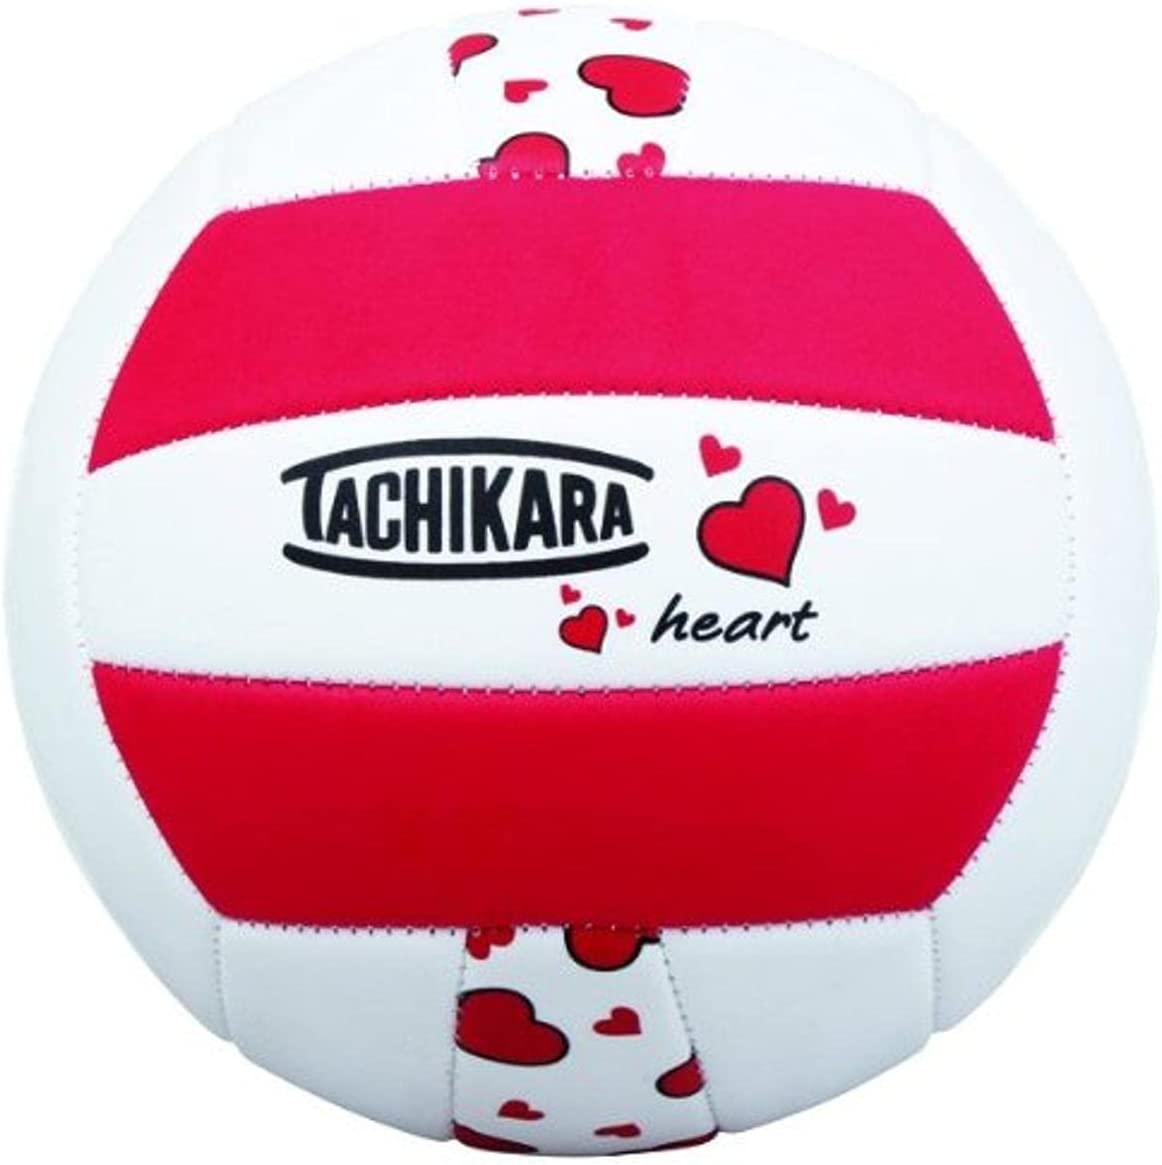 Tachikara Sof-Tec Heart Al sold out. Cash special price Indoor Outdoor Black Volleyball Red Whi